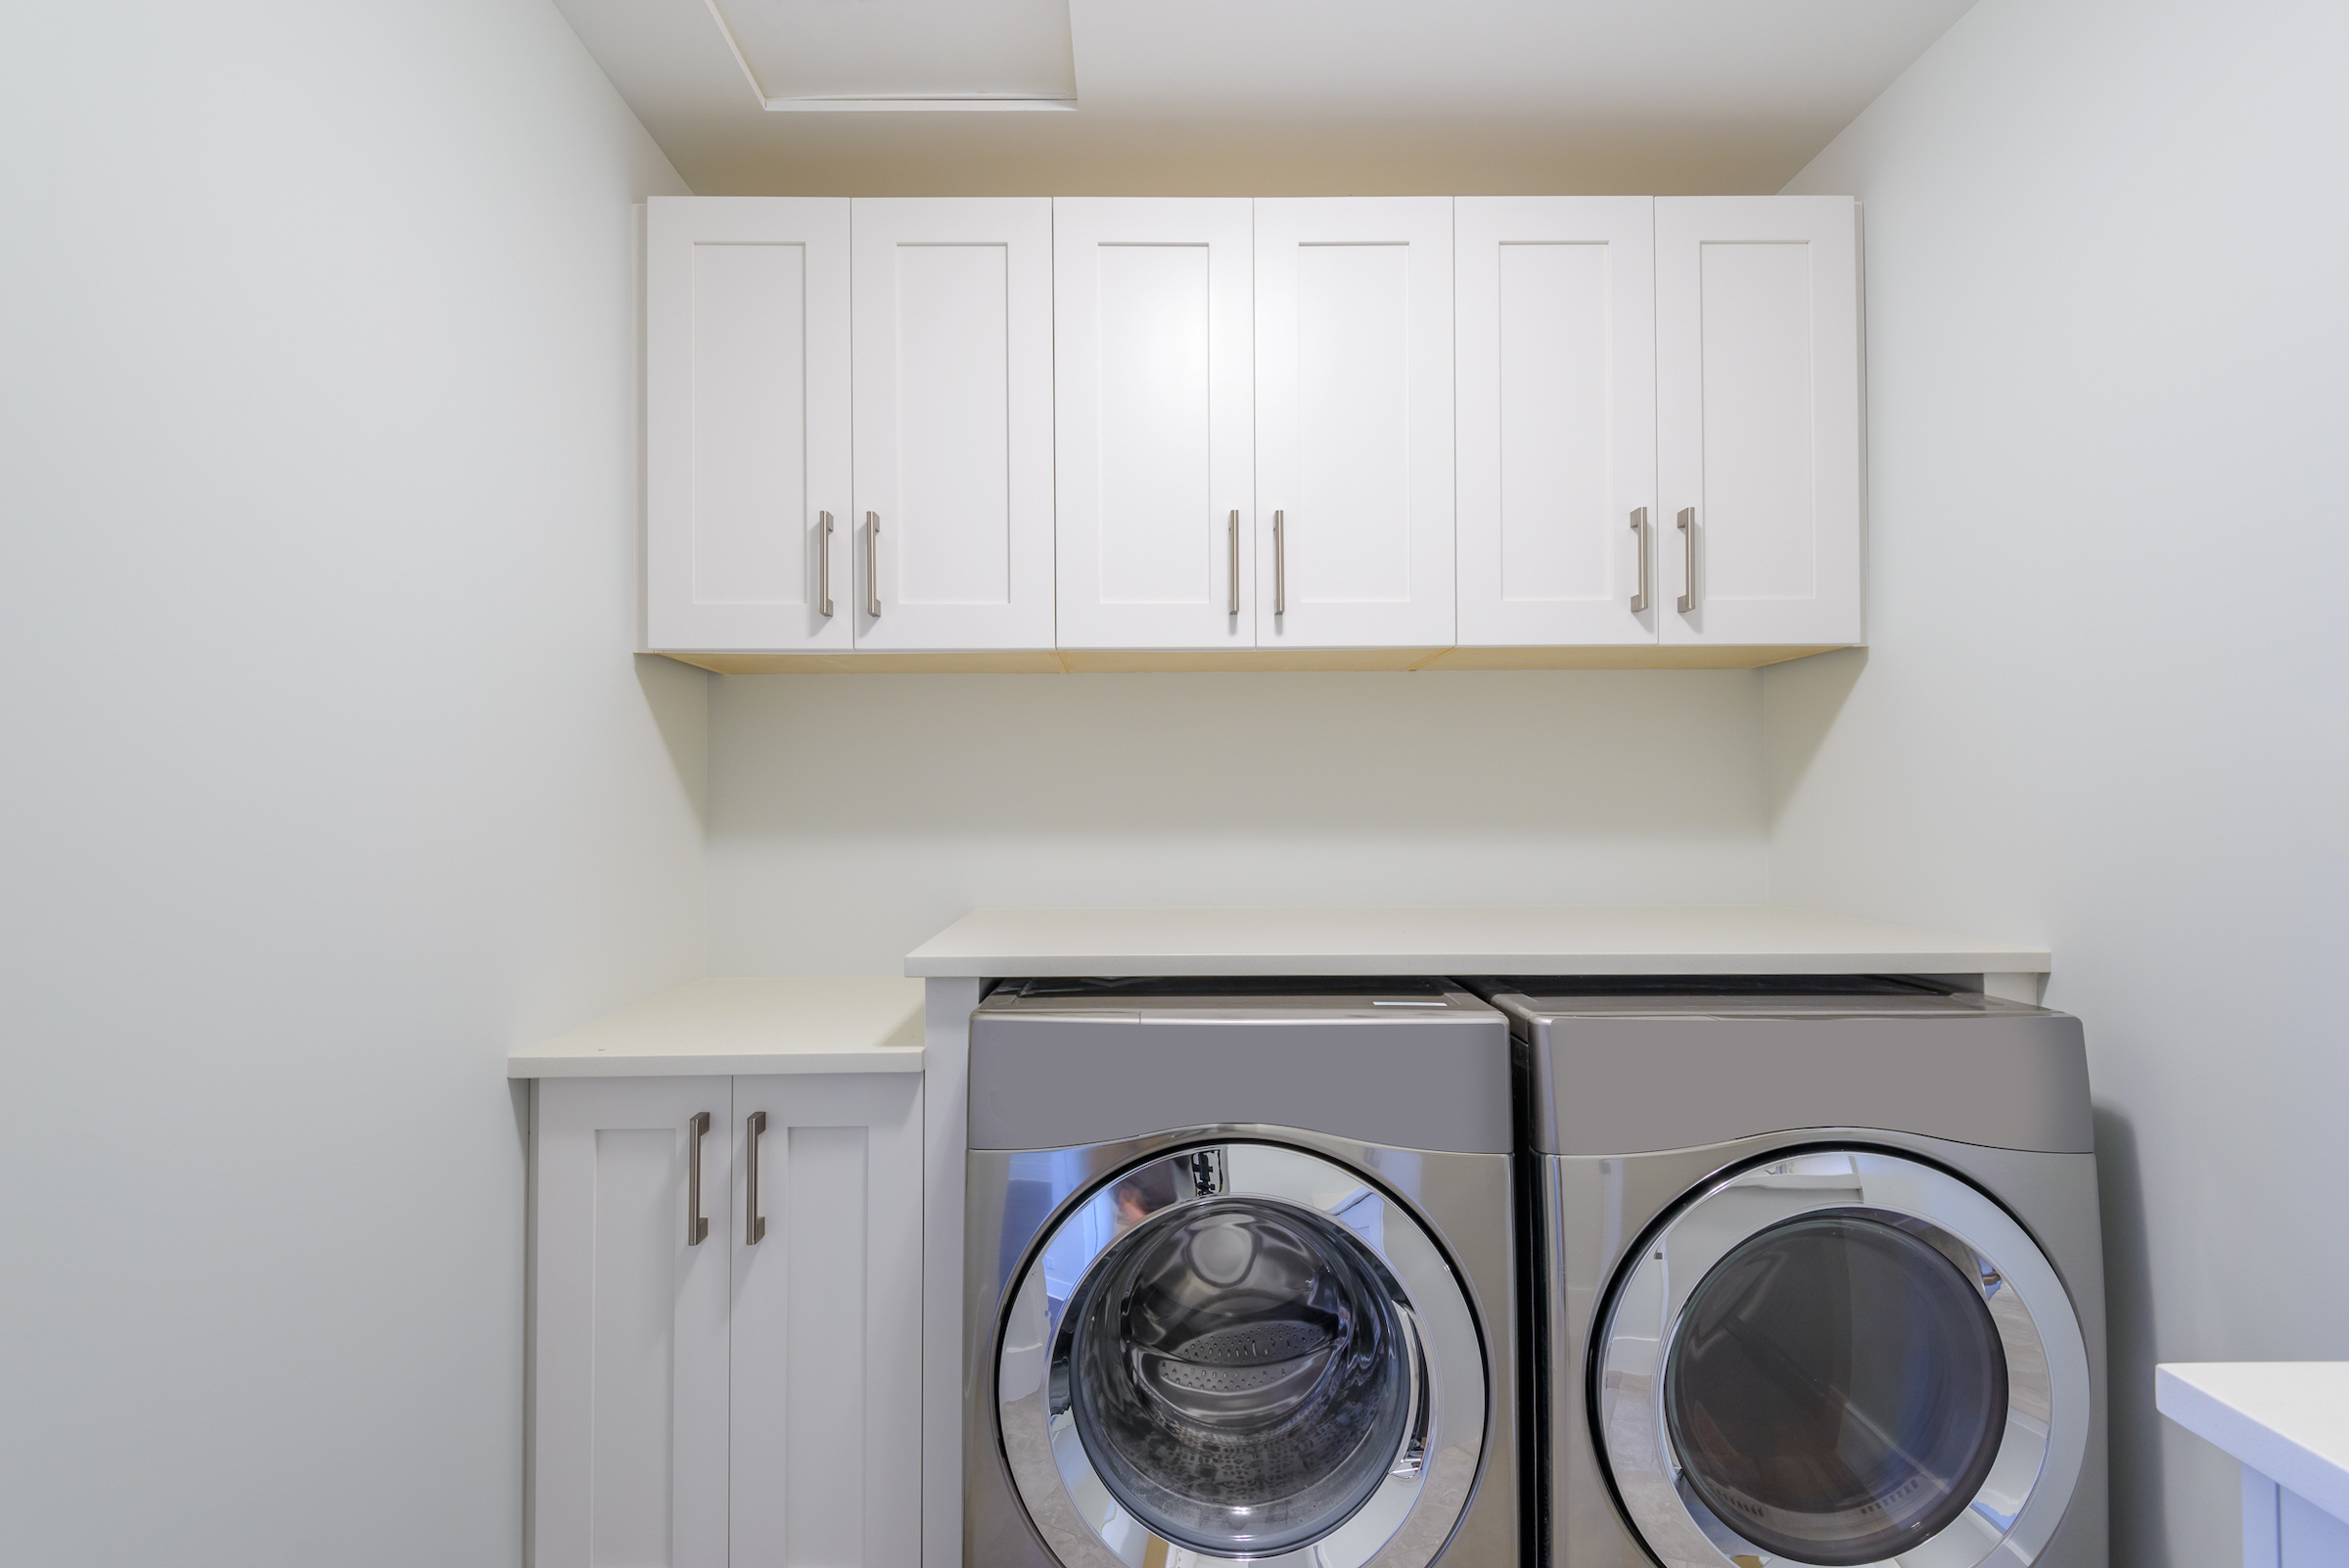 Is your dryer not working because of a faulty dryer latch?